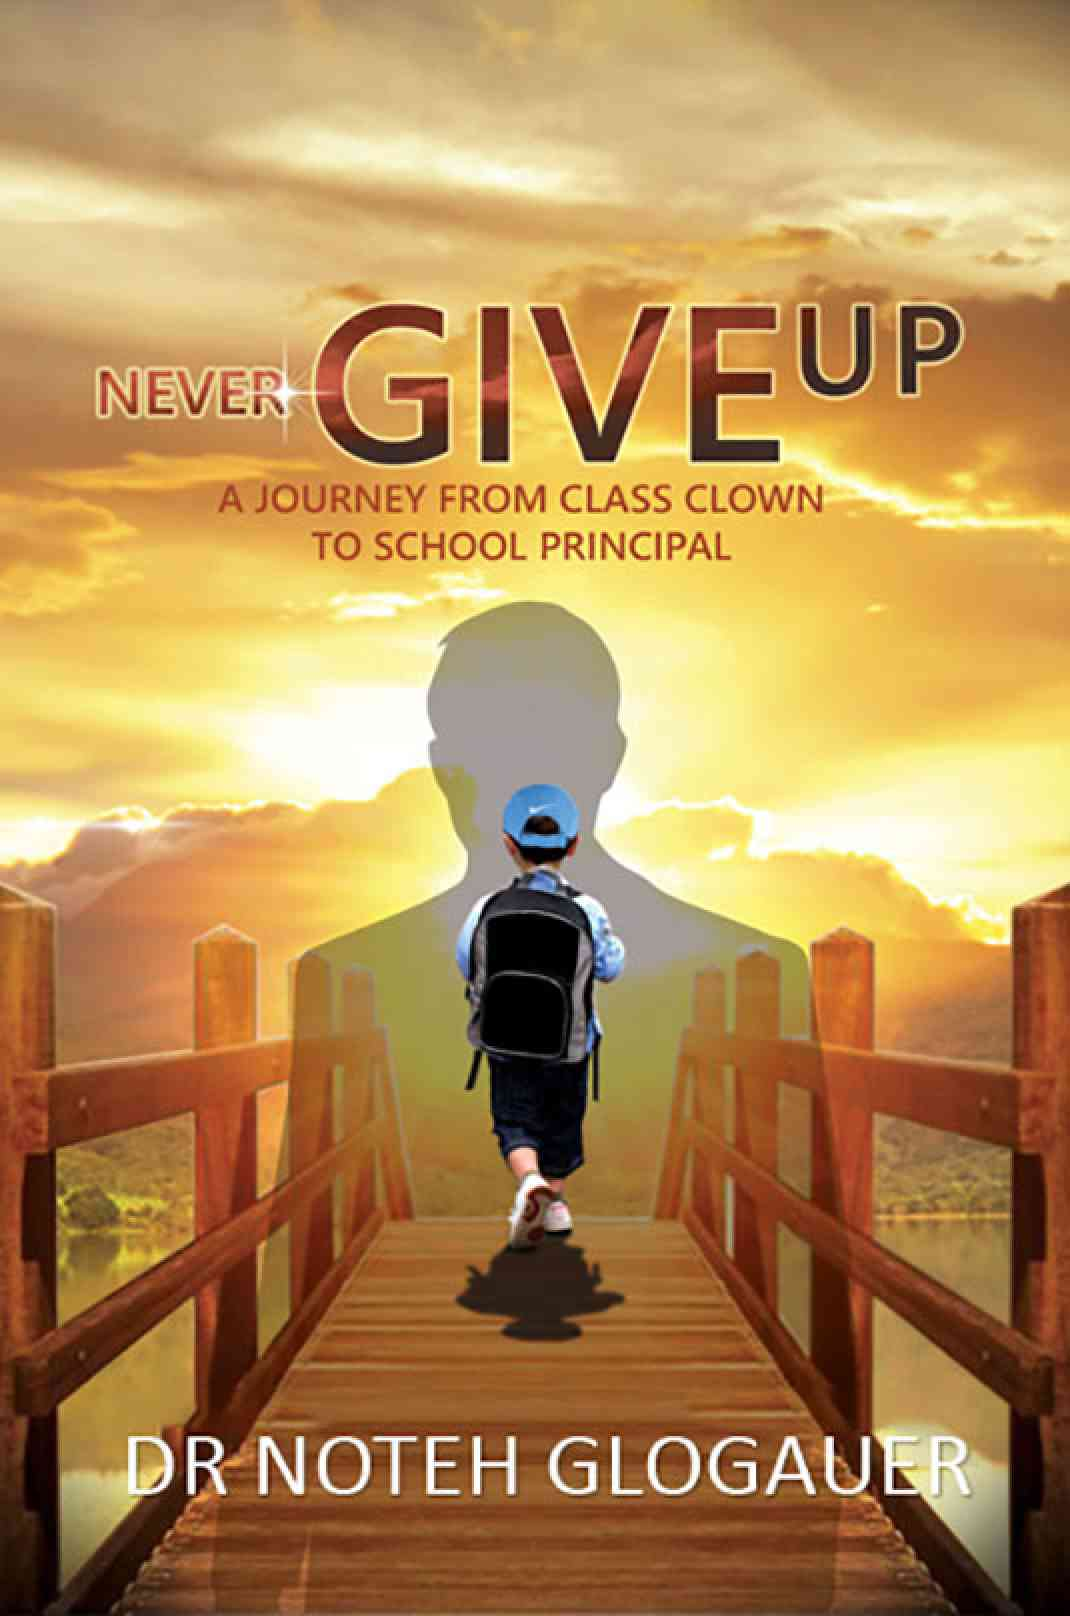 Never Give Up - A Journey from Class Clown to School Principal